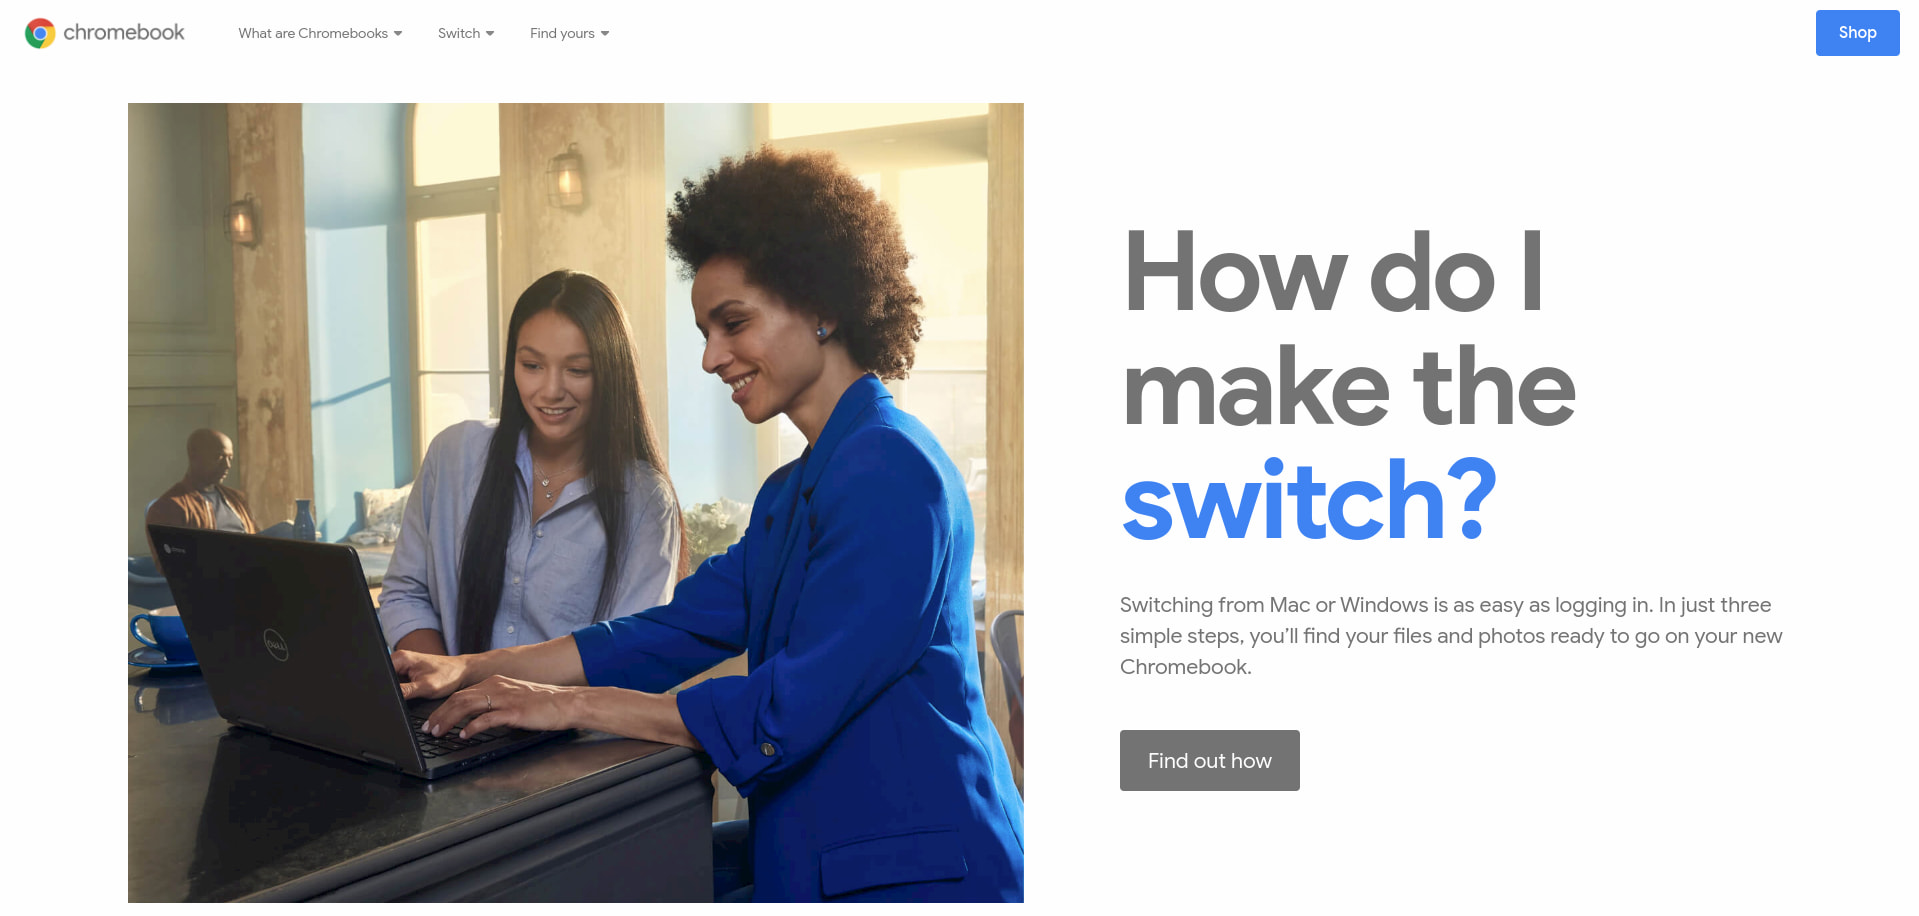 Google's new Chromebook landing page gets total overhaul, targets the consumer market